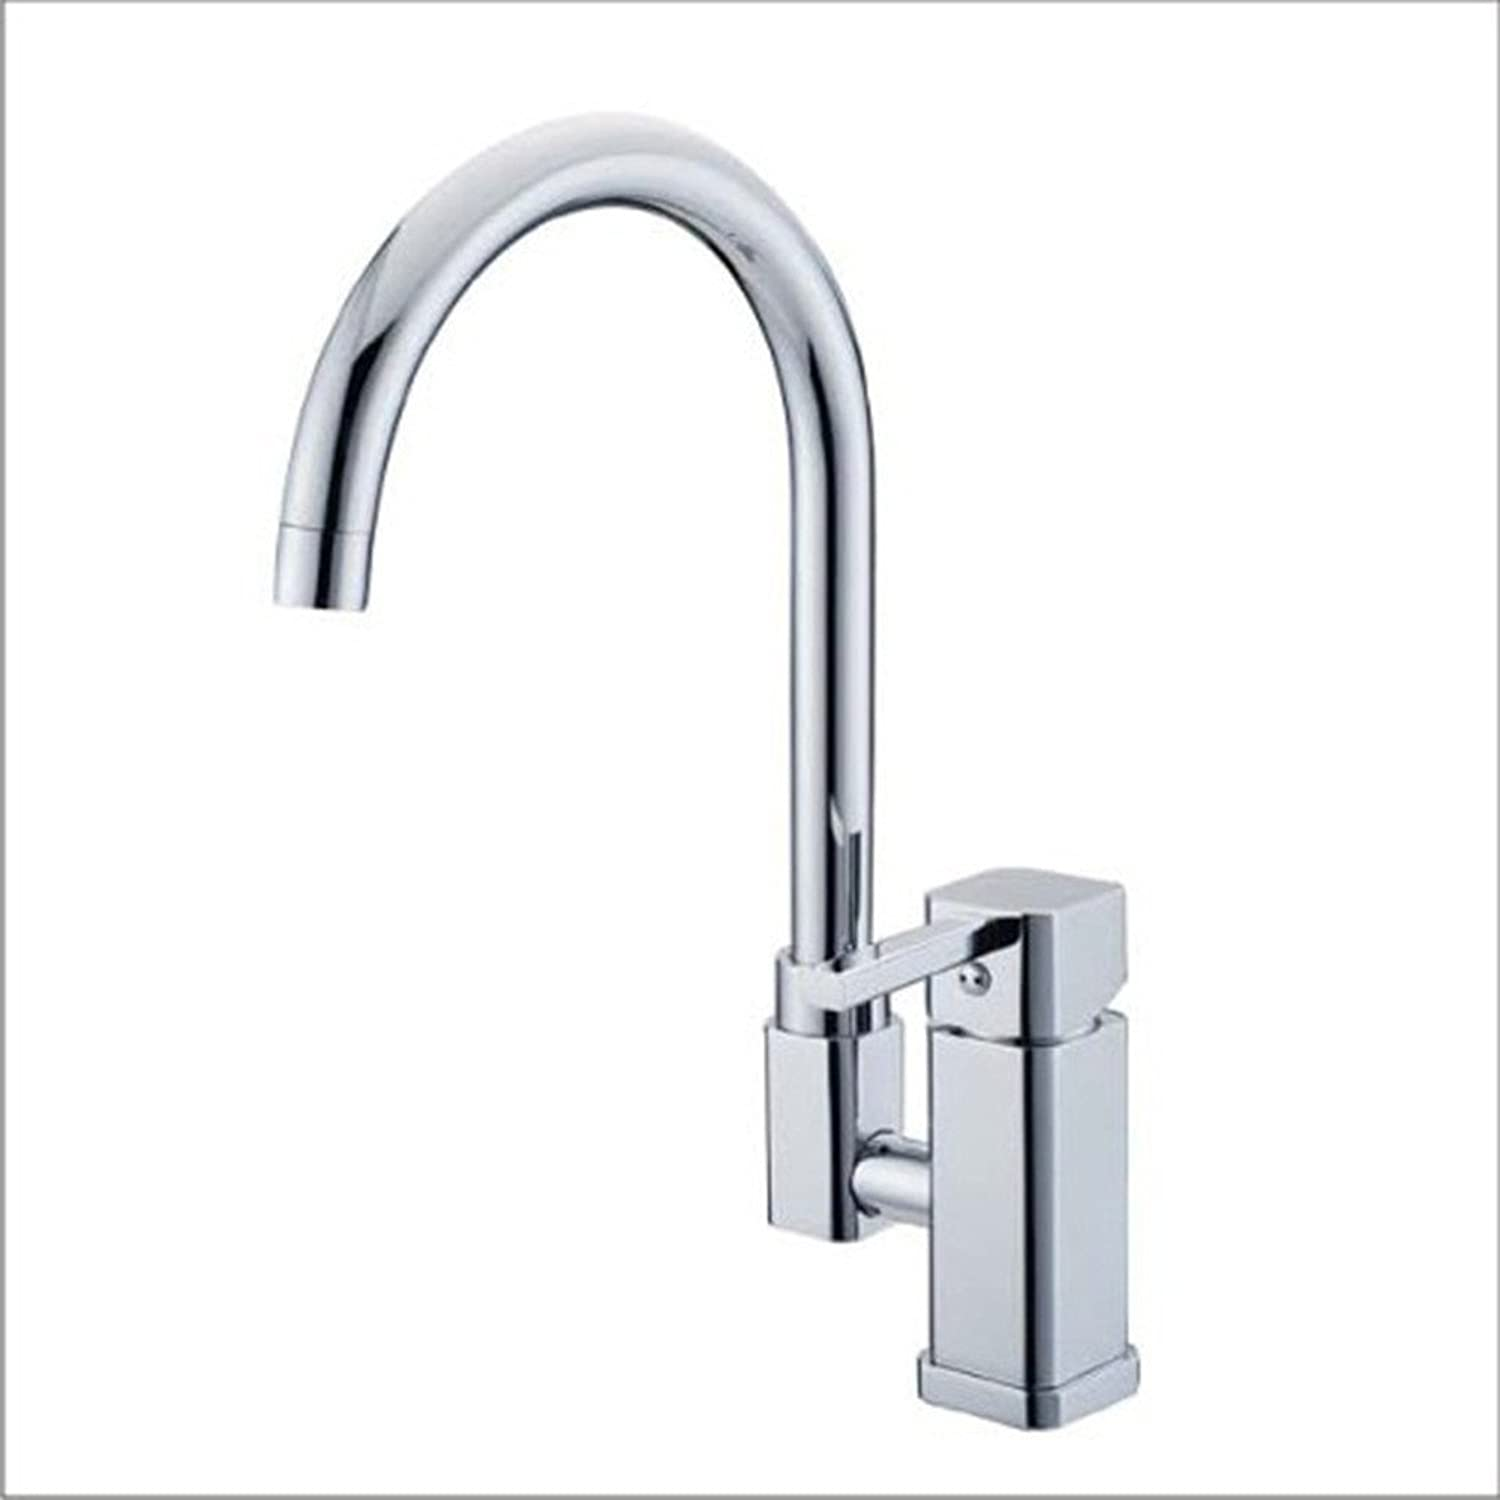 Commercial Single Lever Pull Down Kitchen Sink Faucet Brass Constructed Polished Hot and Cold Mixed Water Kitchen Sink Basin Mixer